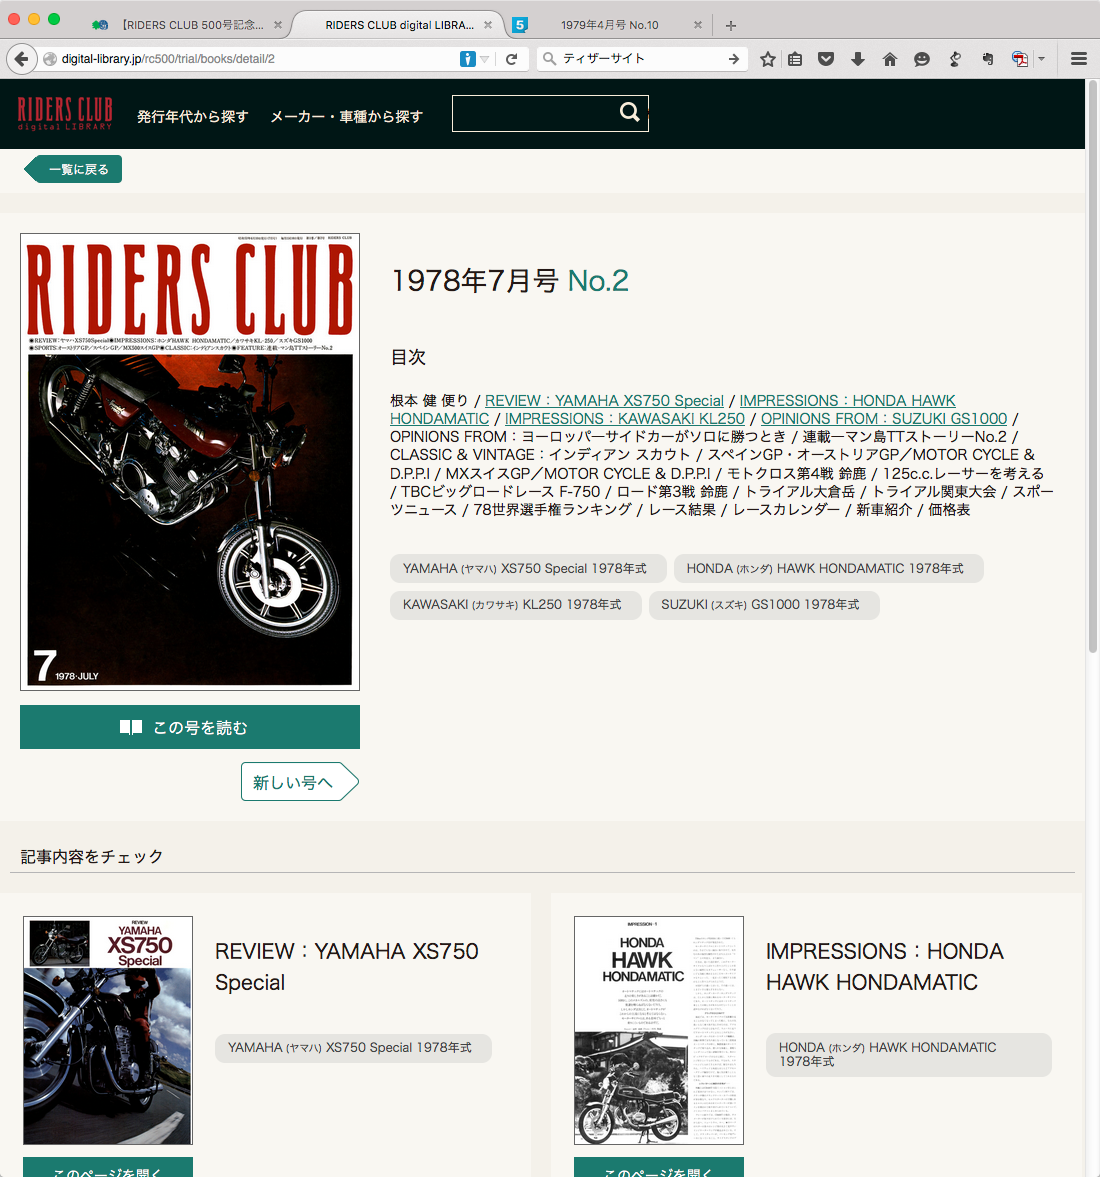 RIDERS_CLUB_digital_LIBRARY_1